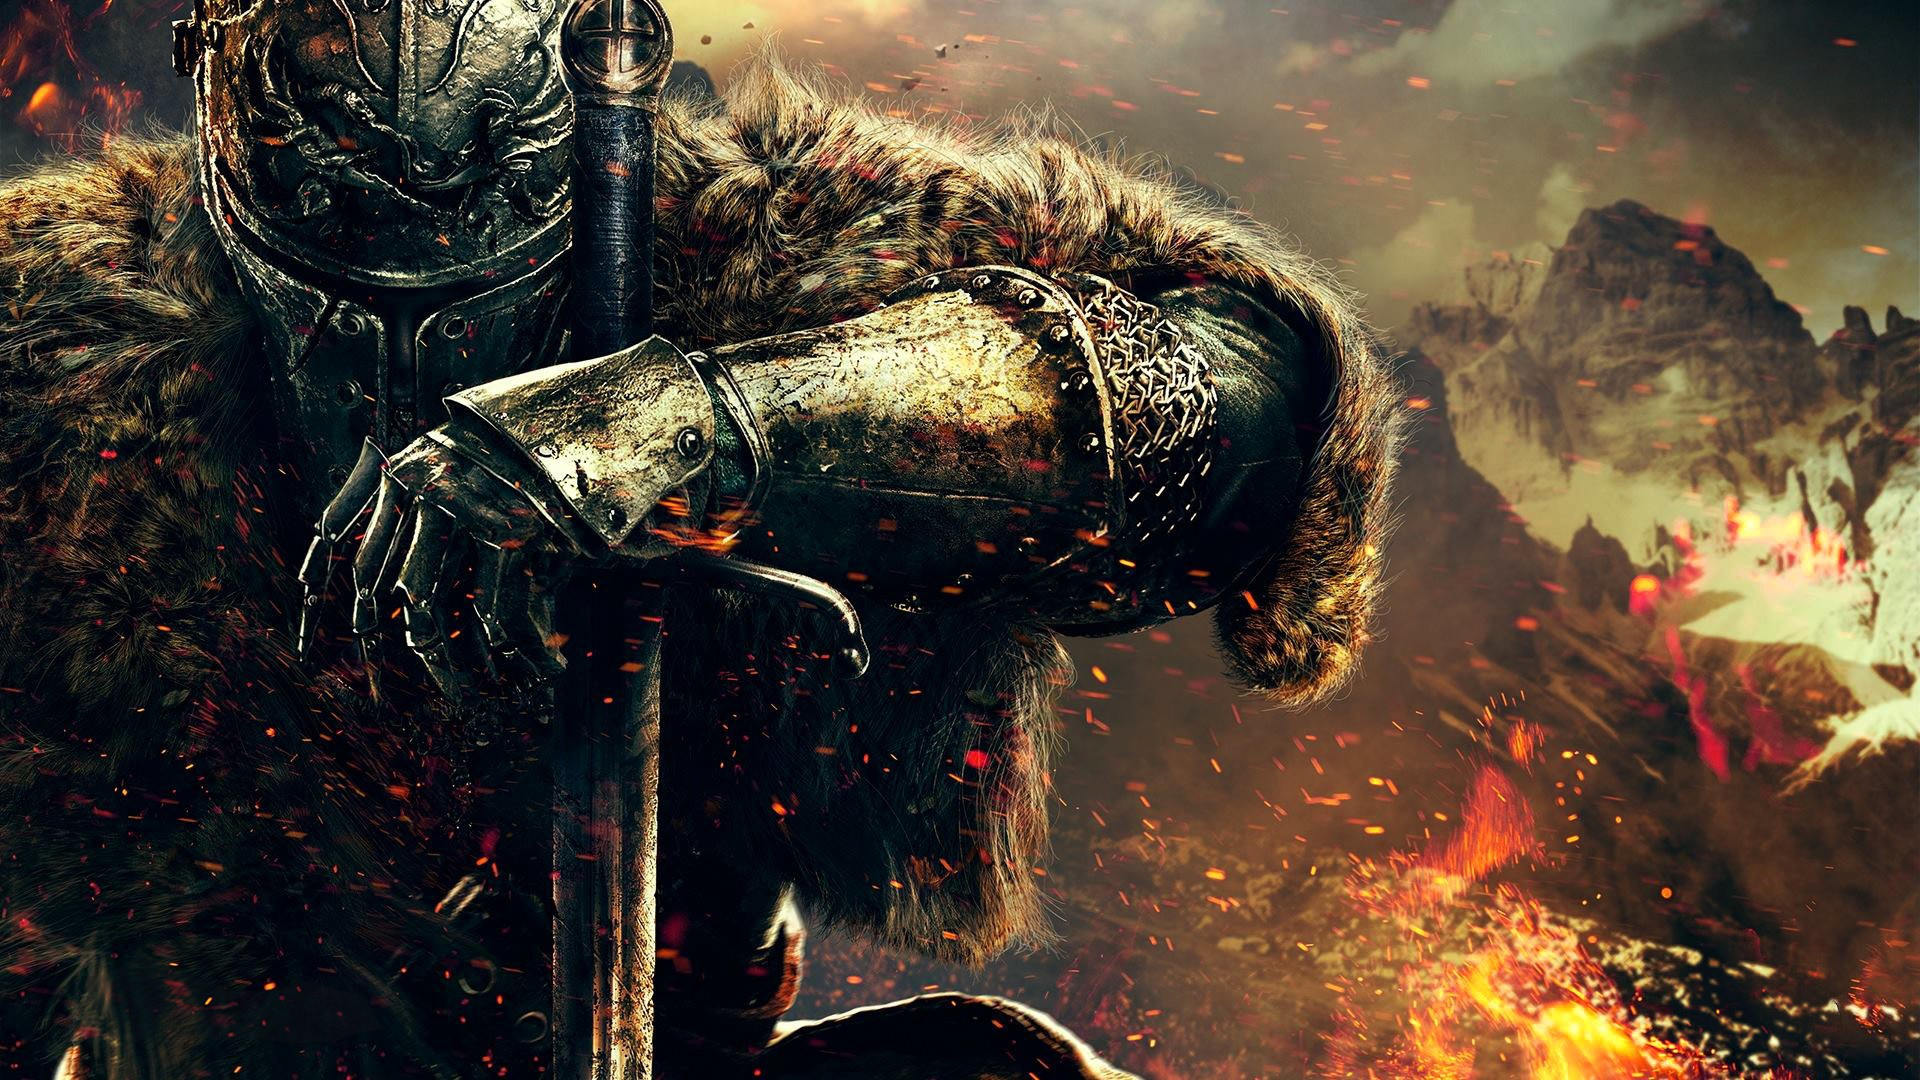 dark souls wallpaper 1920x1080 ·① download free stunning hd